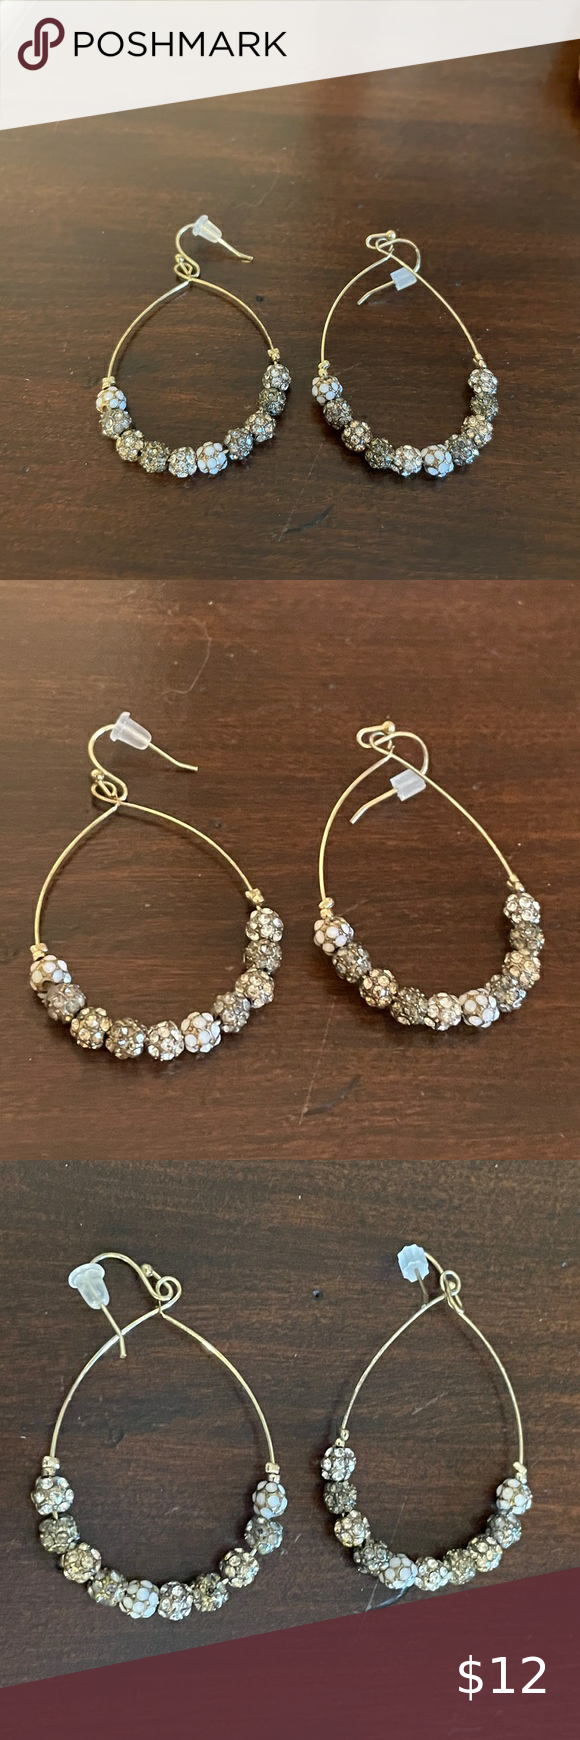 Jeweled beaded drop hoop earrings Check out this l